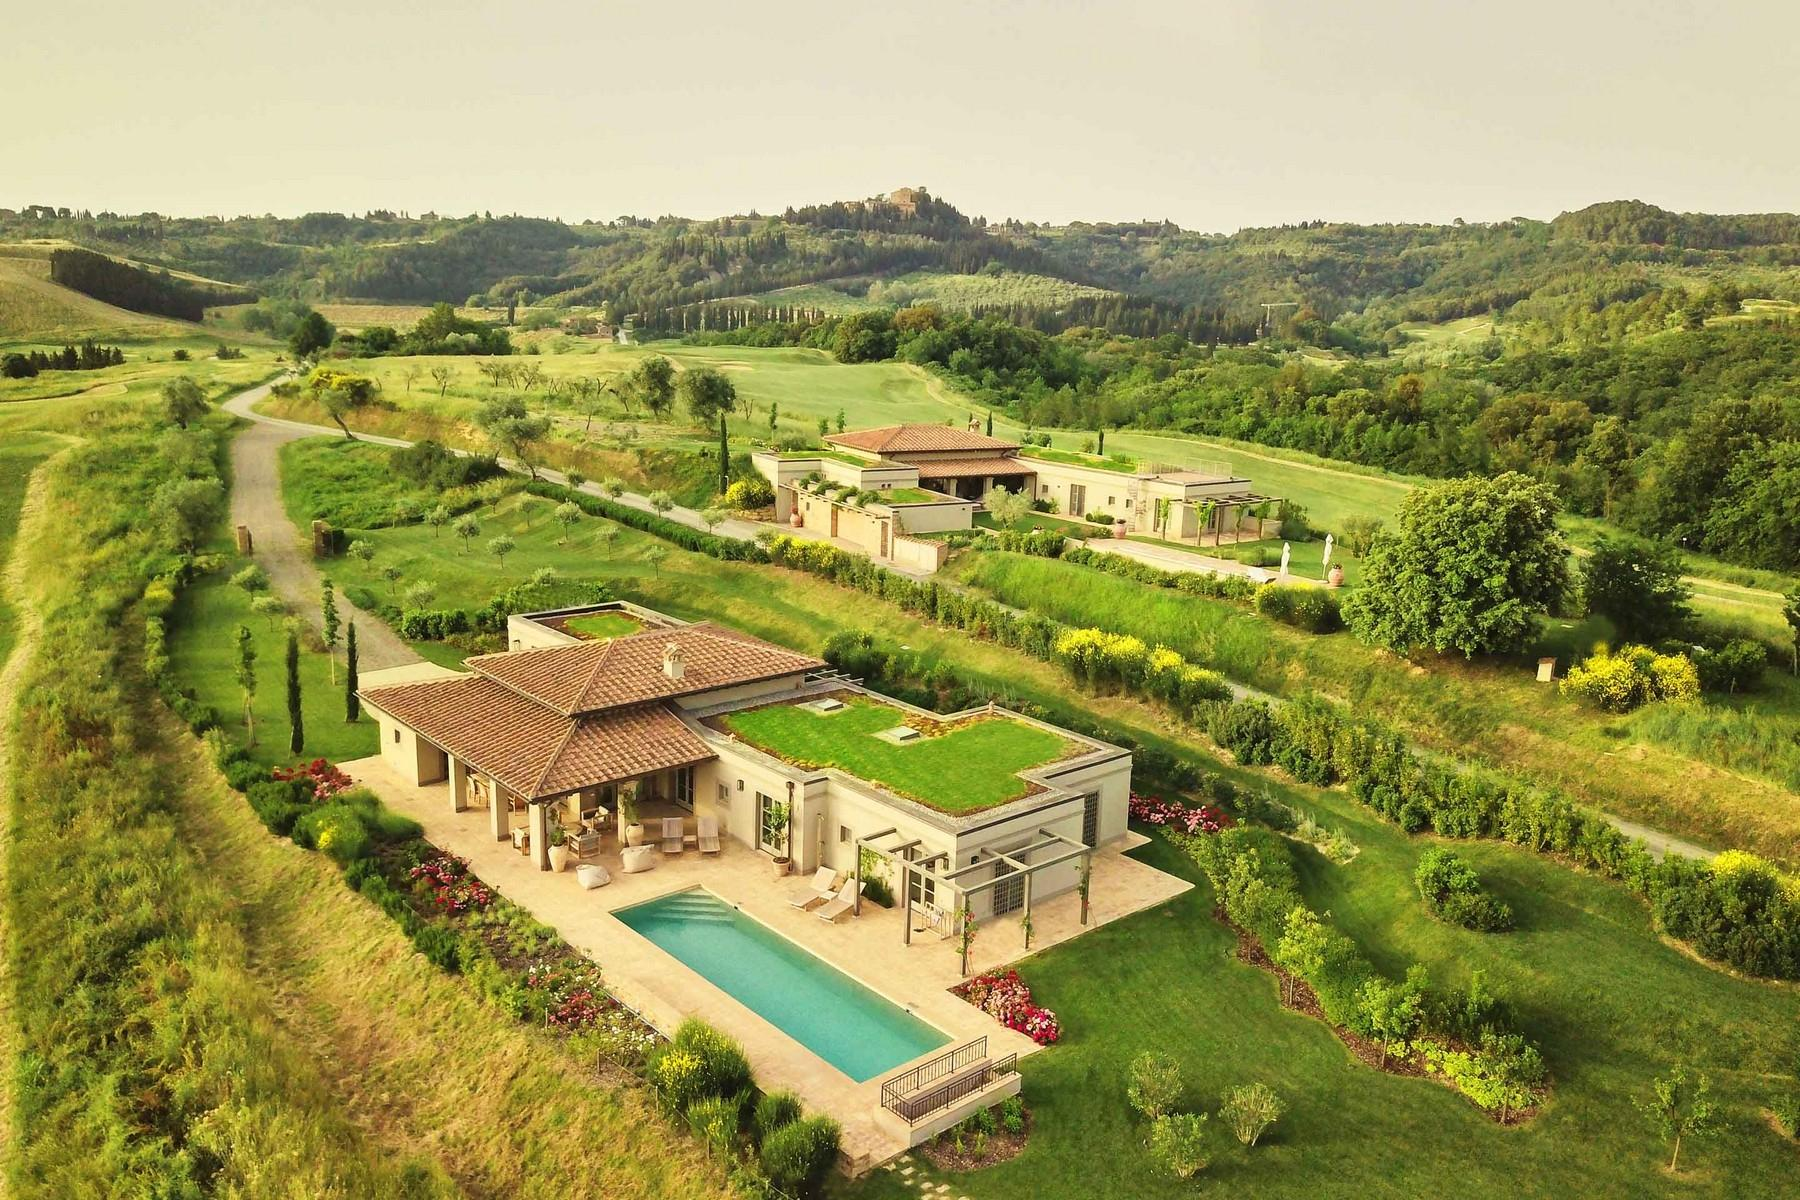 Marvellous new build villas in the Tuscan countryside - 4